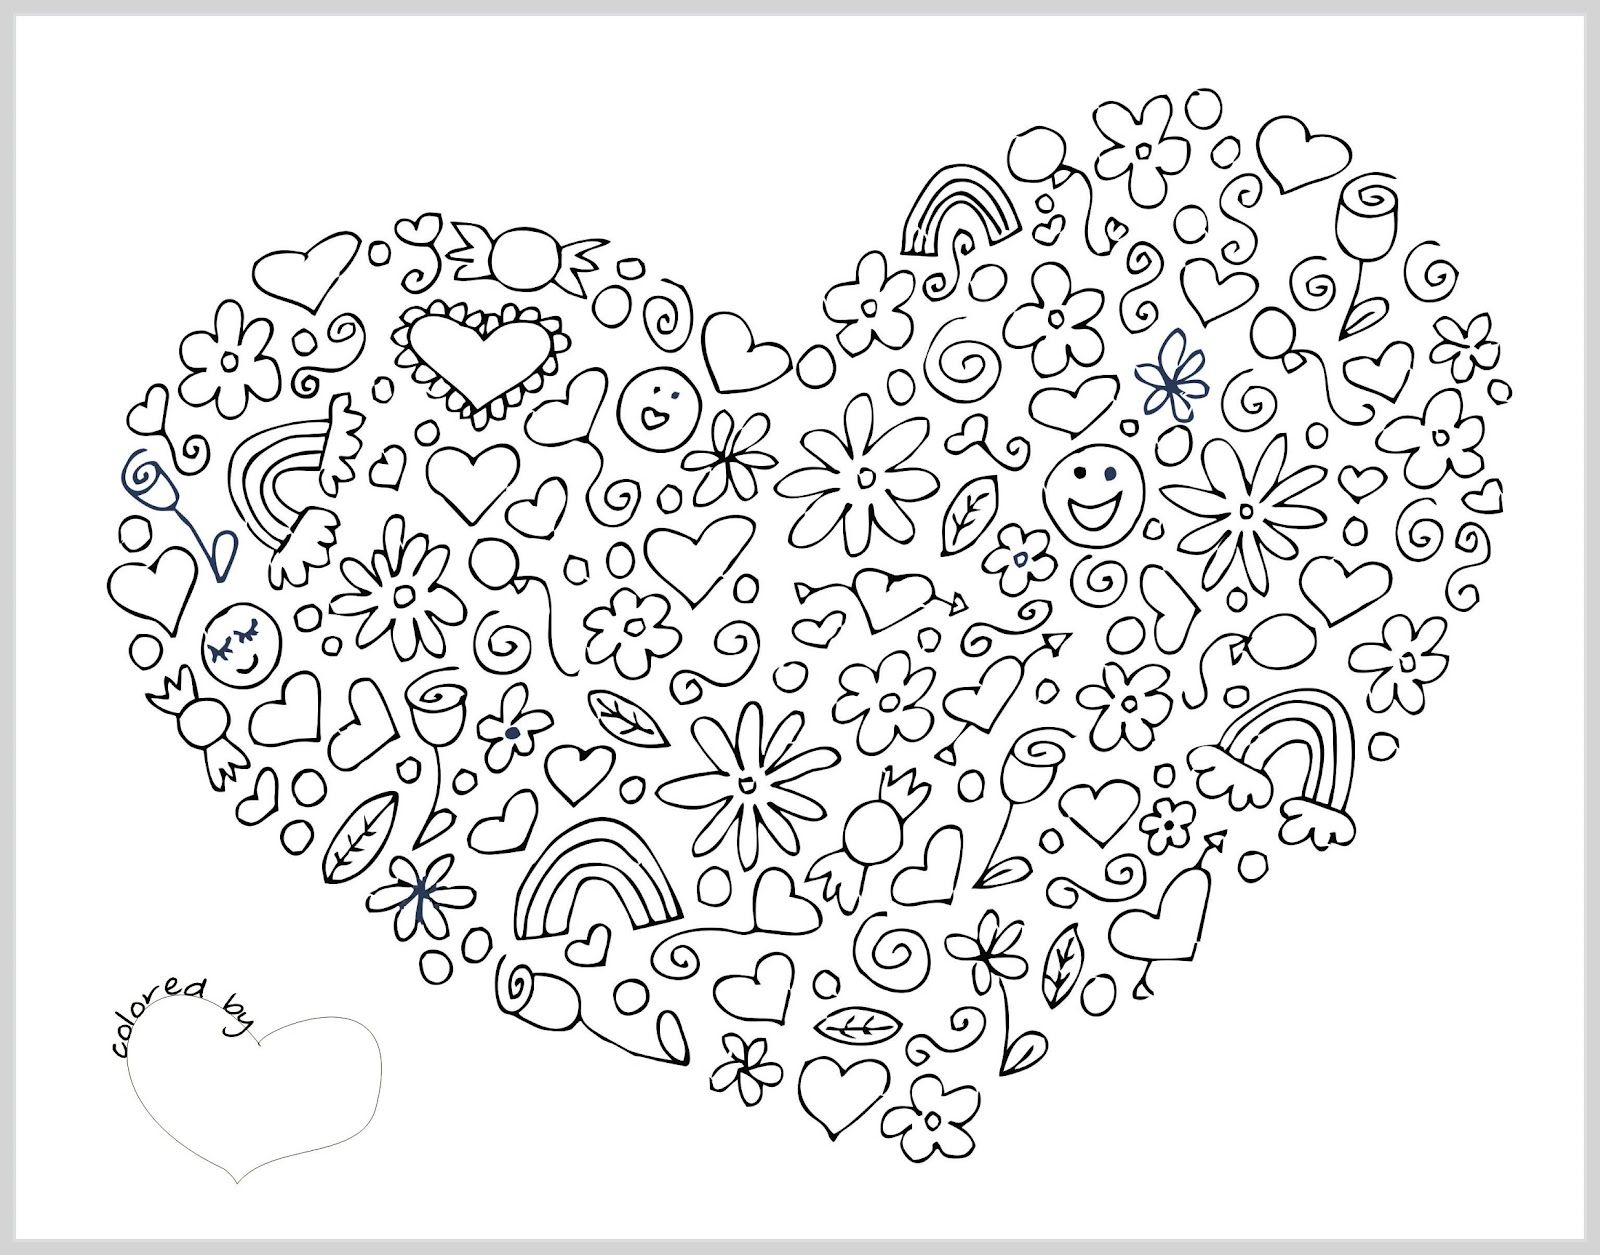 Online coloring sheets for adults - Free Coloring Pages For Adults Printable Hard To Color Coloring